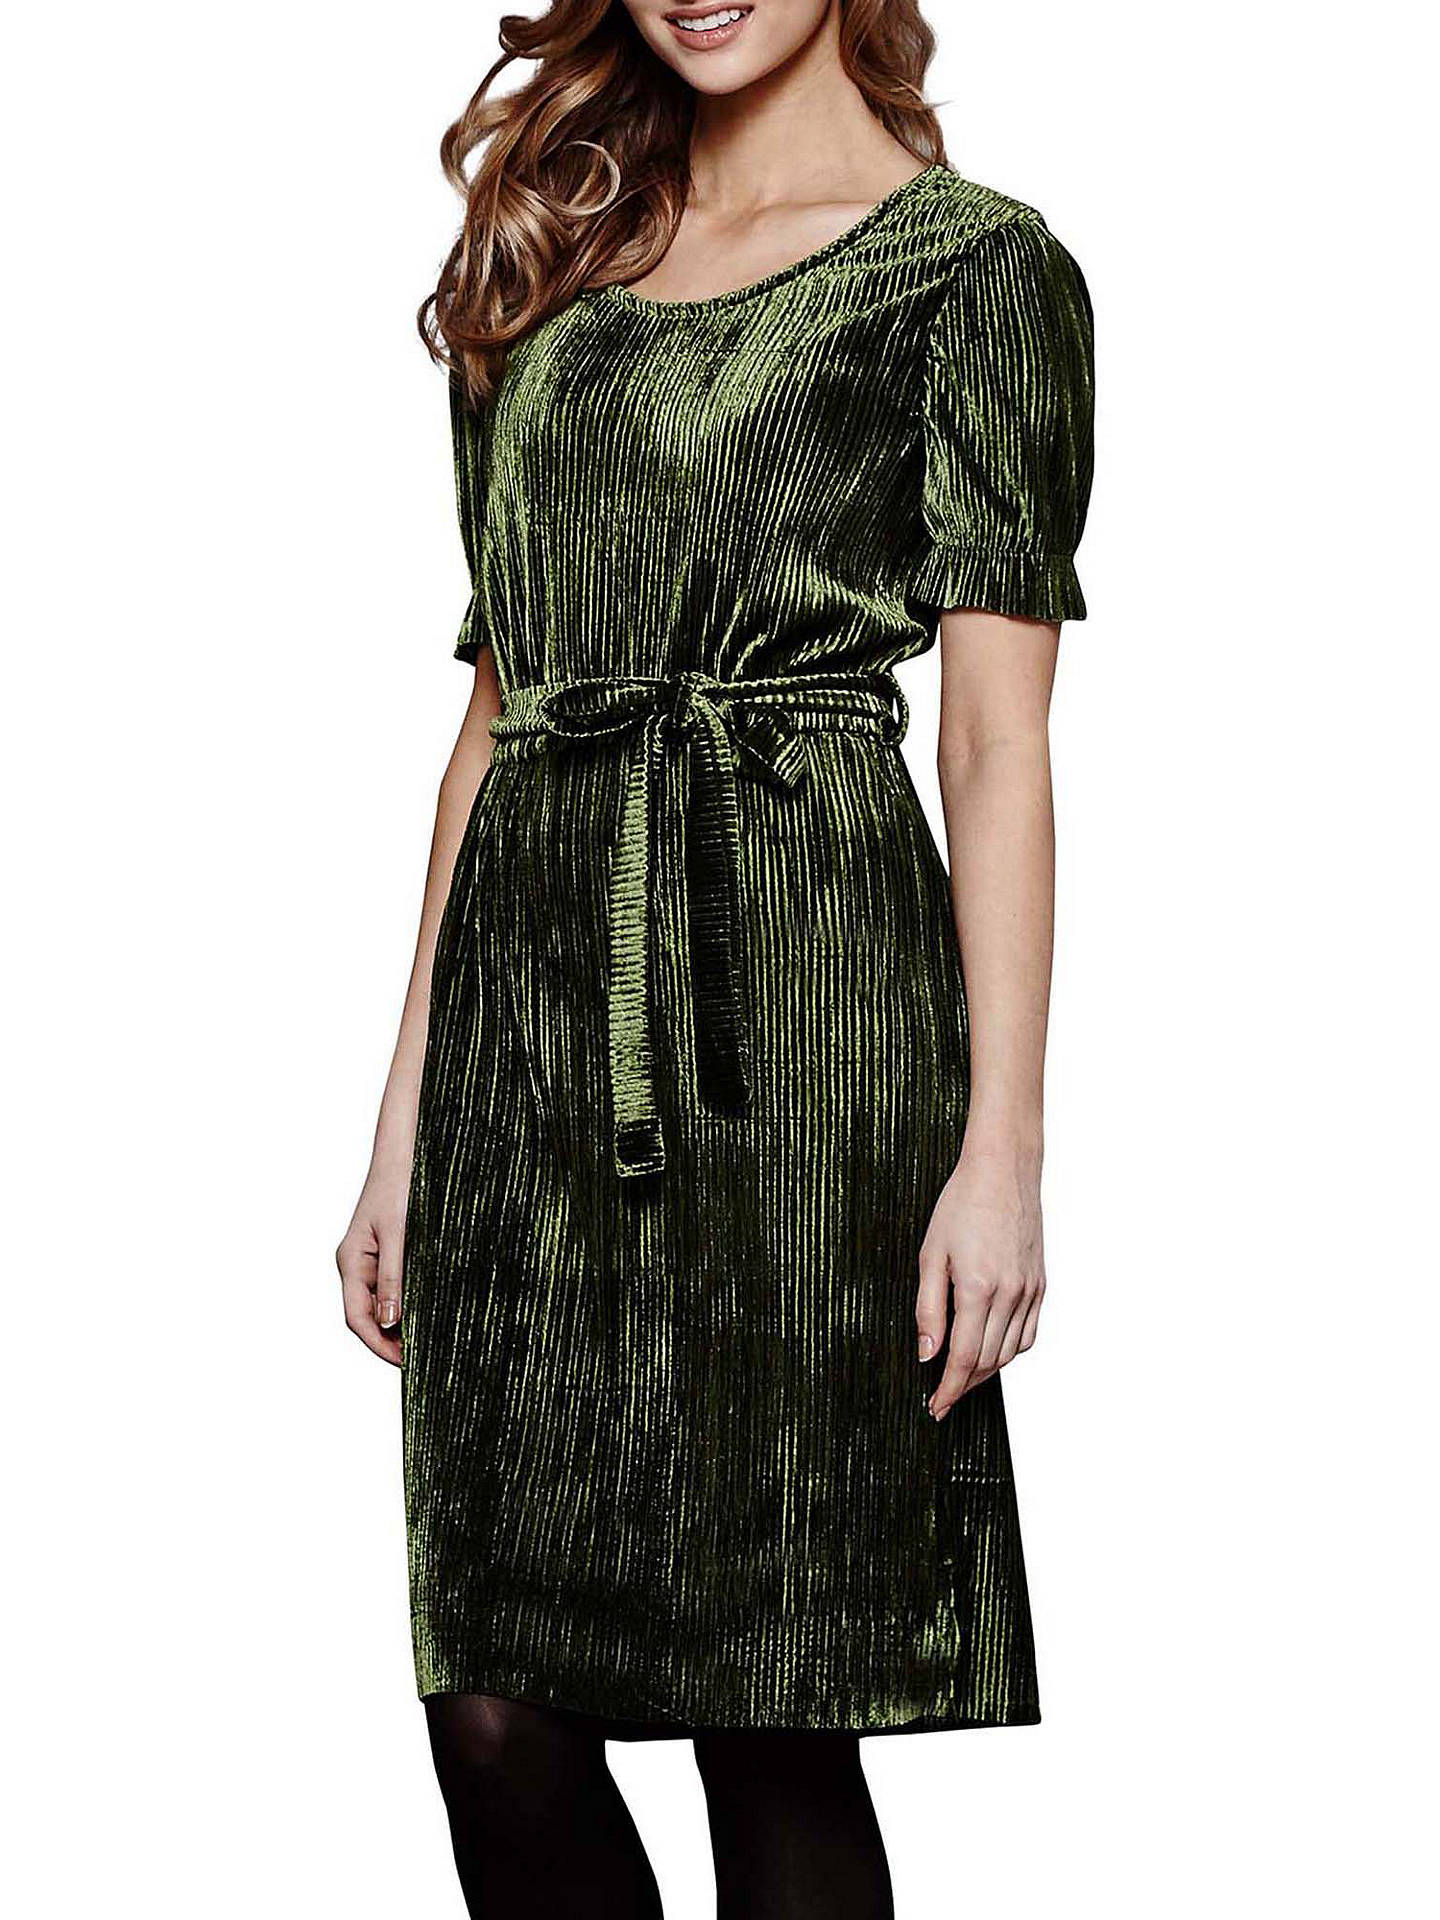 974ad8bef1789 Yumi Crinkled Dress, Olive Green at John Lewis & Partners